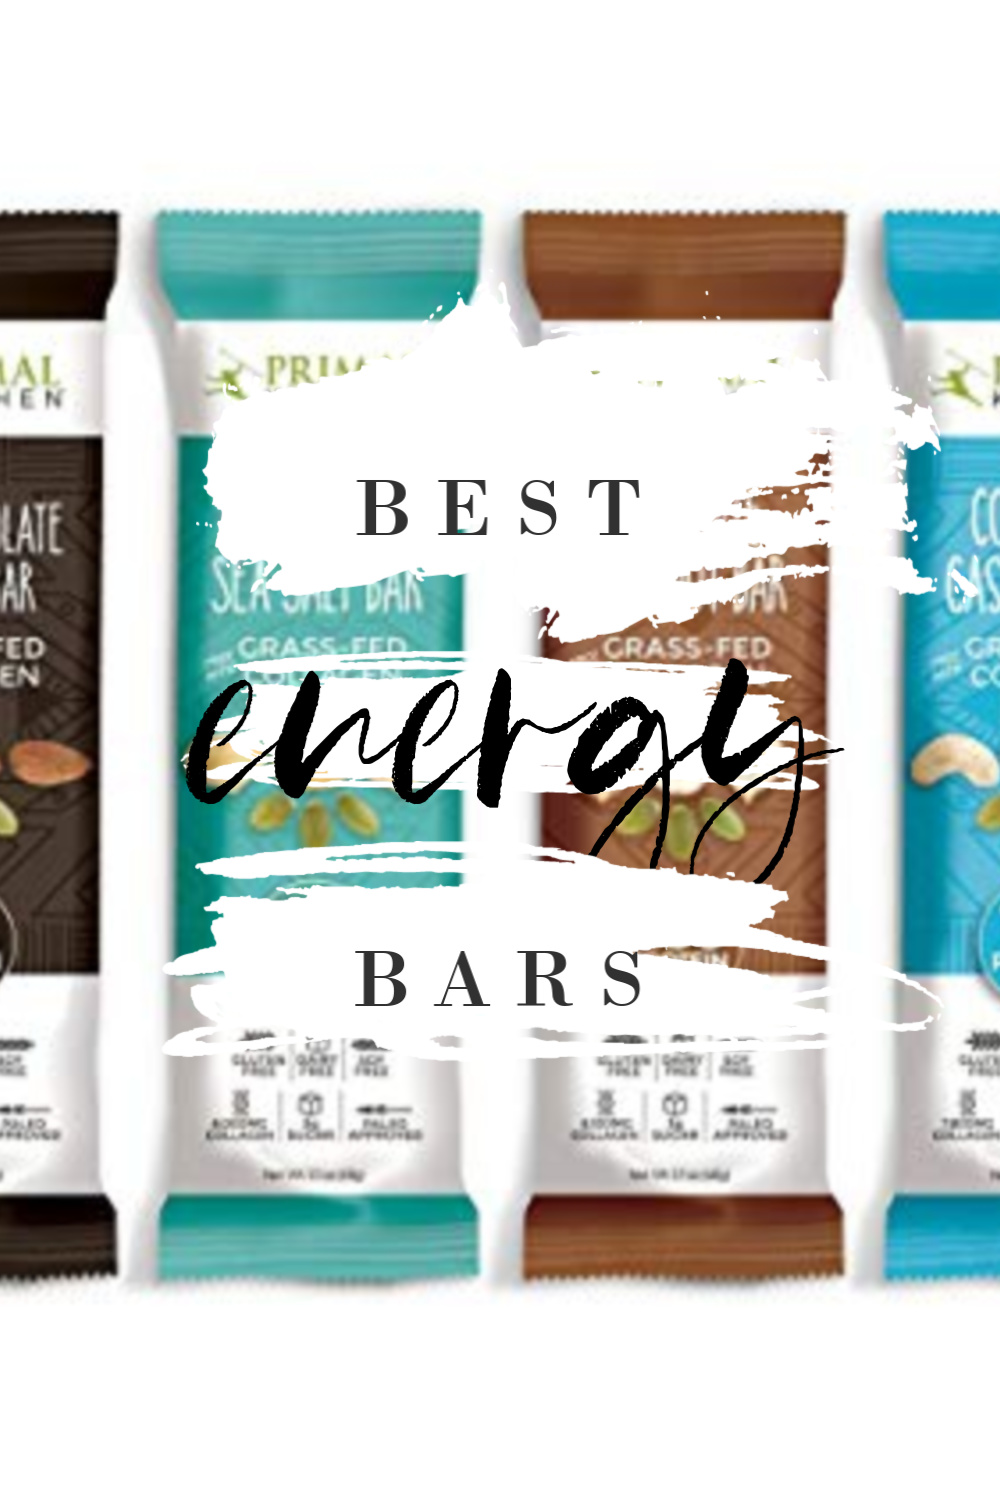 Best Energy Bars. Power Bars. Energy Bars. Breakfast Bars. Cereal Bars. Snack Bars. Bars are everywhere. It's no wonder they're so popular with our hectic, on-the-go lifestyles. #energybars #bars #healthy #review #healthyliving #snackbar #breakfastbar #workout via @pmctunejones